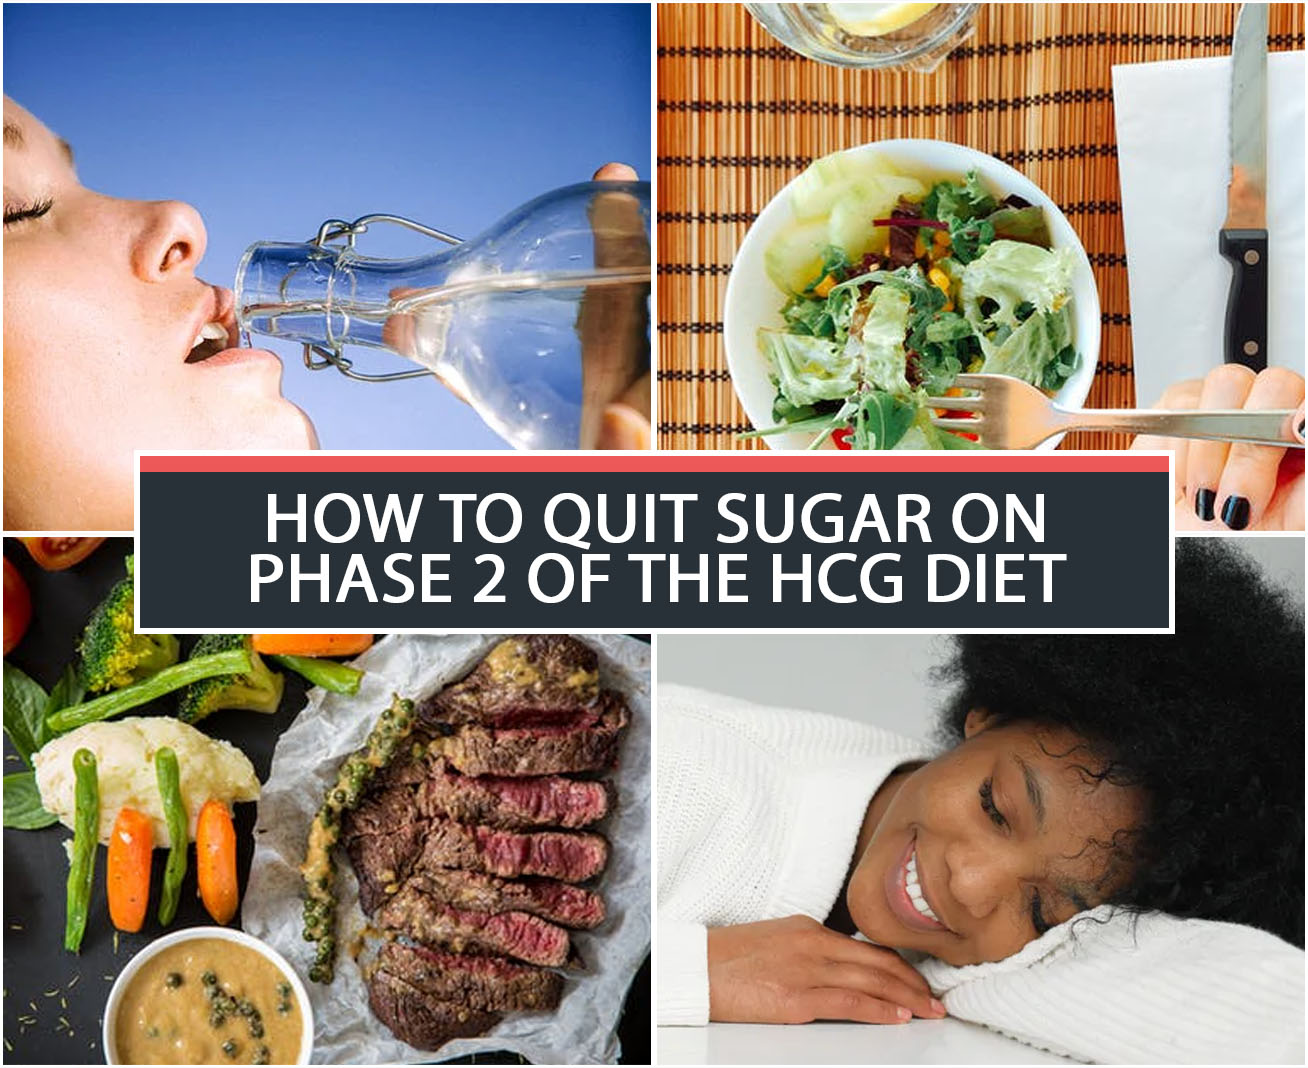 HOW TO QUIT SUGAR ON PHASE 2 OF THE HCG DIET?